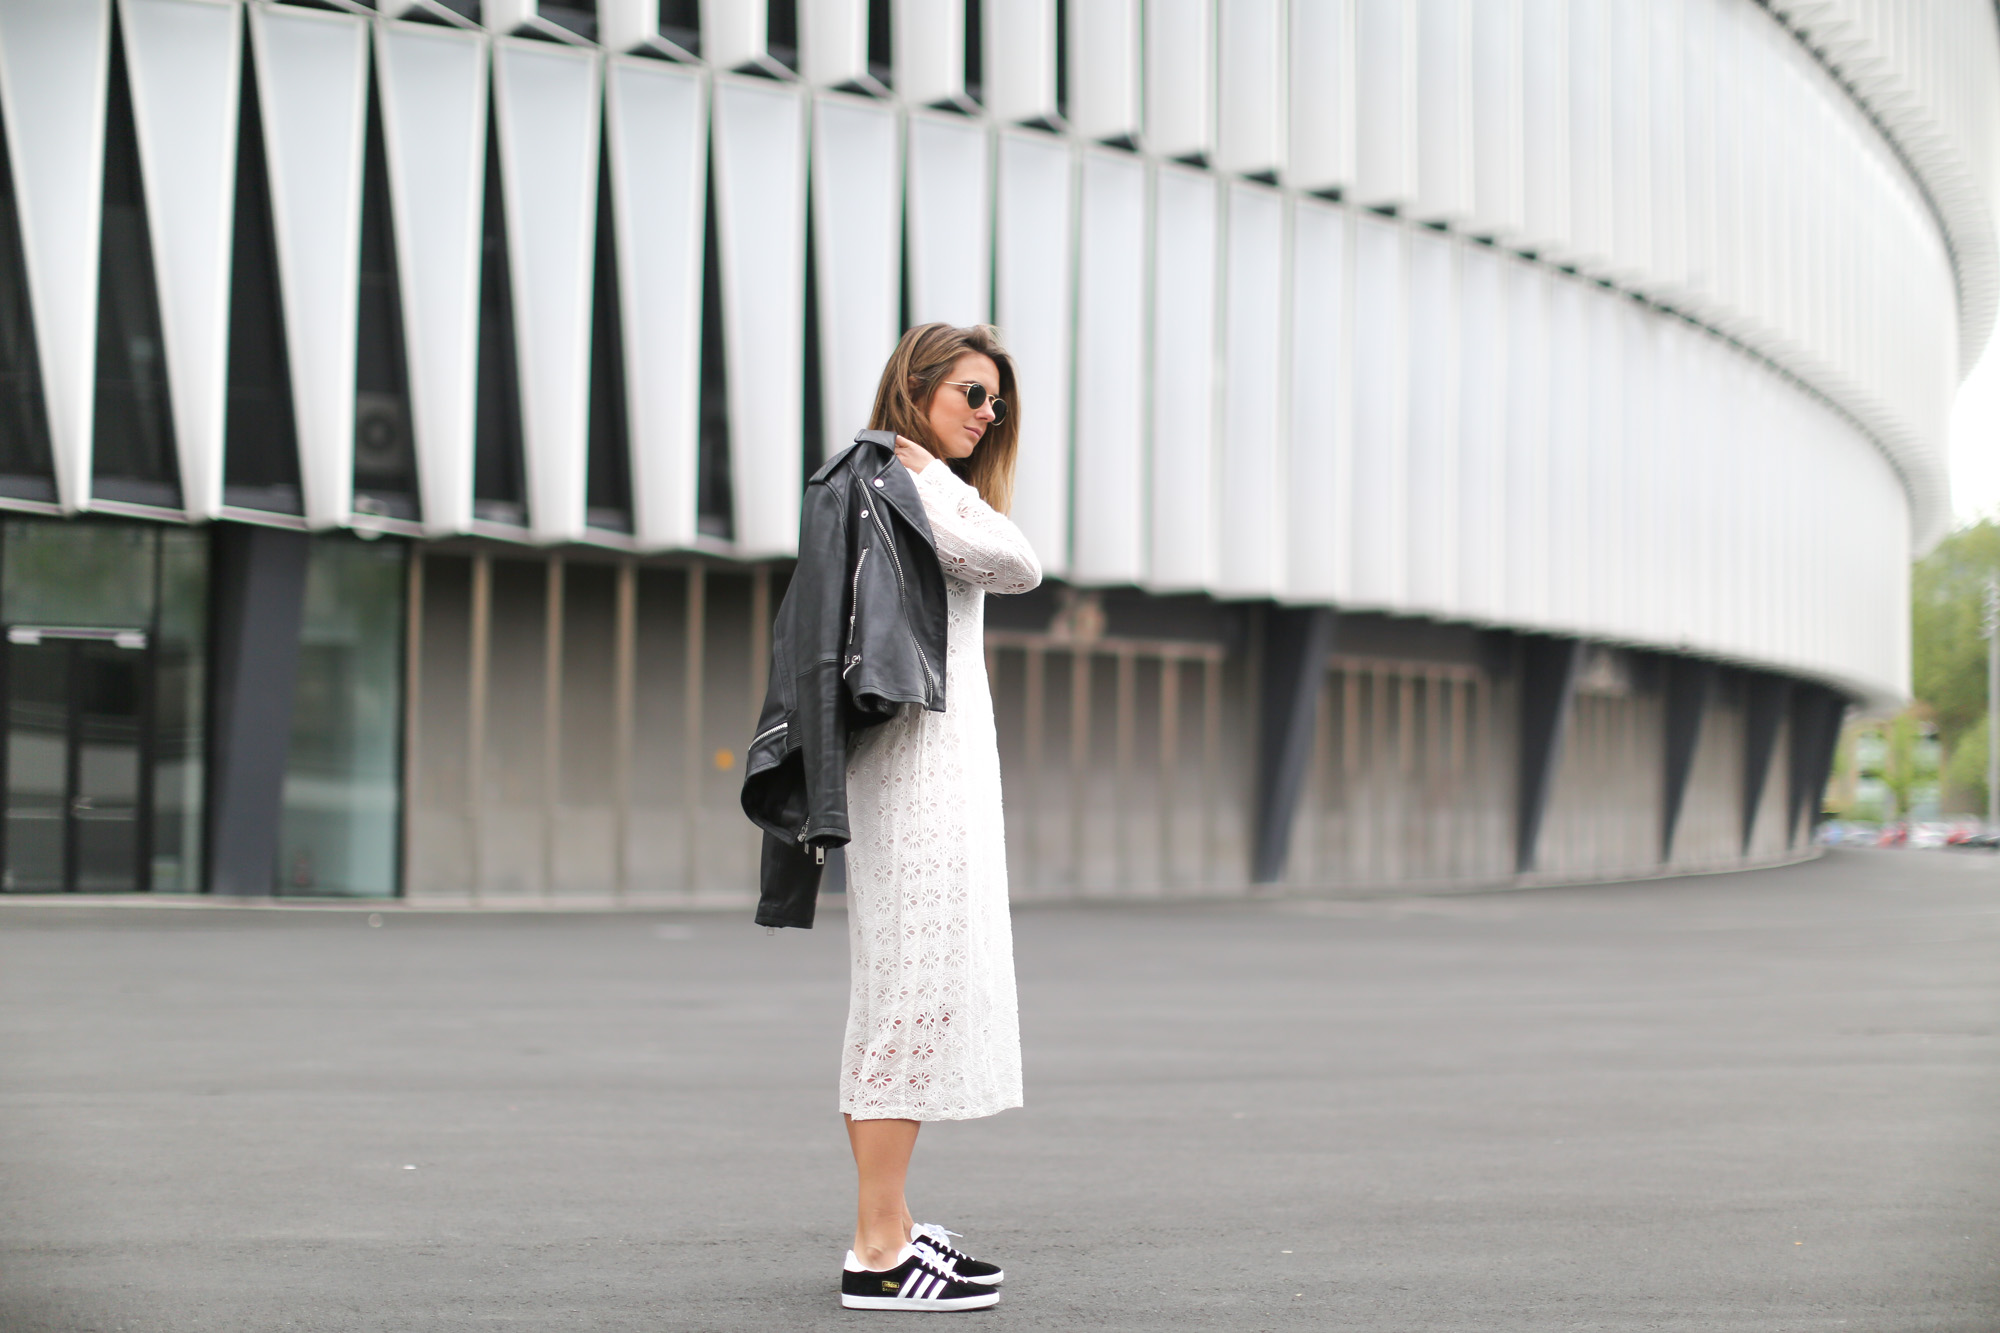 Clochet-streetstyle-mango-premium-leather-biker-jaket-zara-white-embroided-midi-dress-2